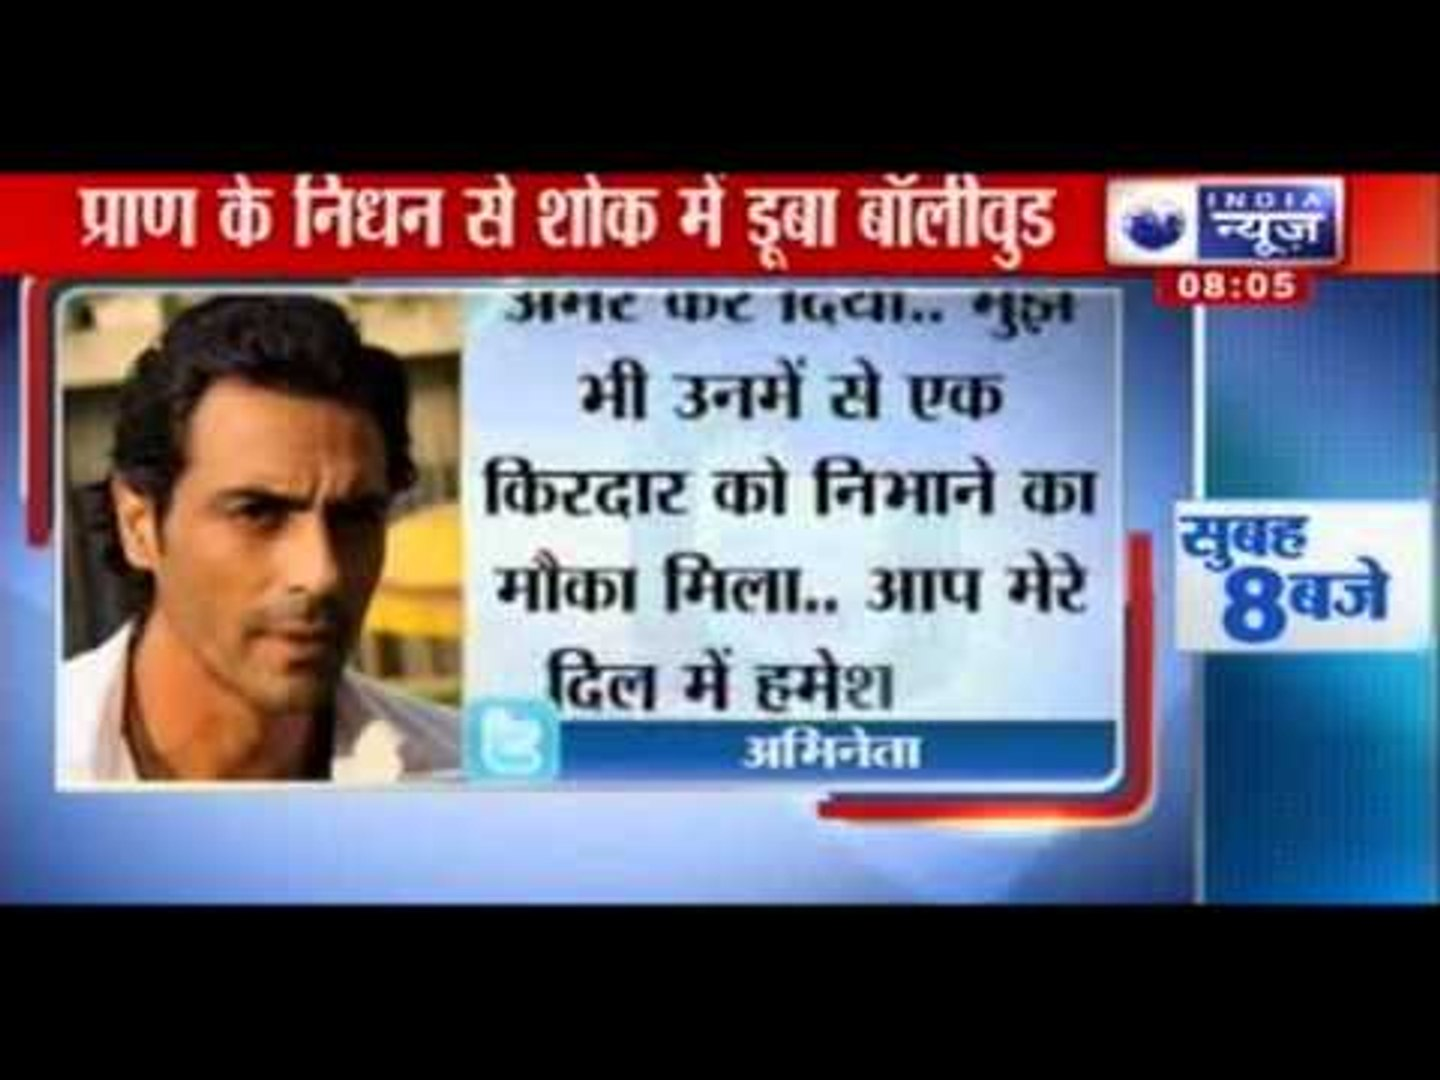 India News: Political leaders and Bollywood industry grief on Pran's death